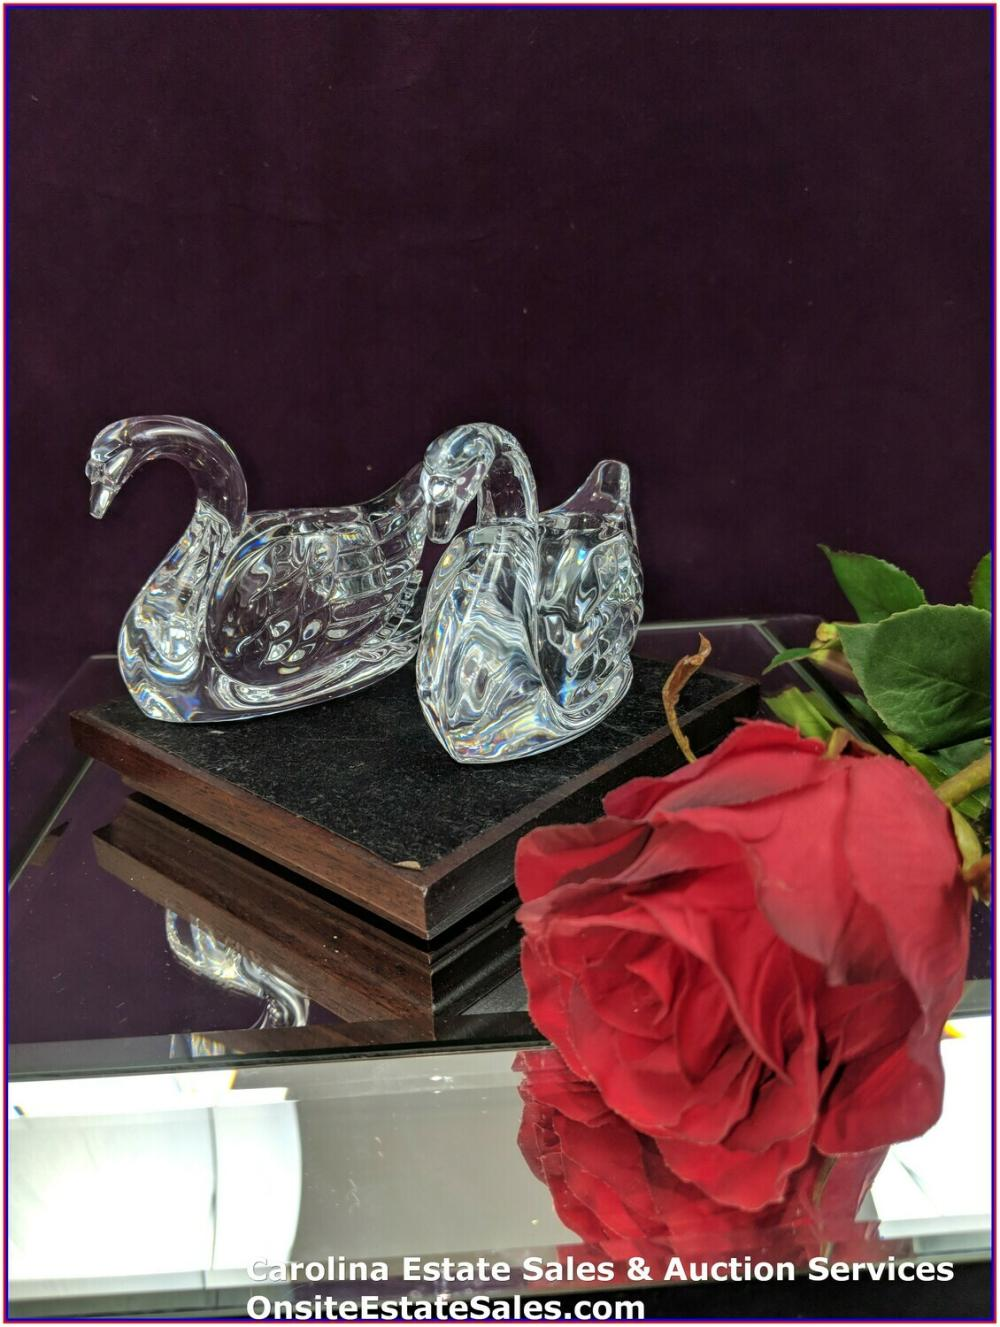 2 WATERFORD CRYSTAL GLASSWARE WEDDING CANDLE HOLDER SWANS PAIR MADE IN IRELAND